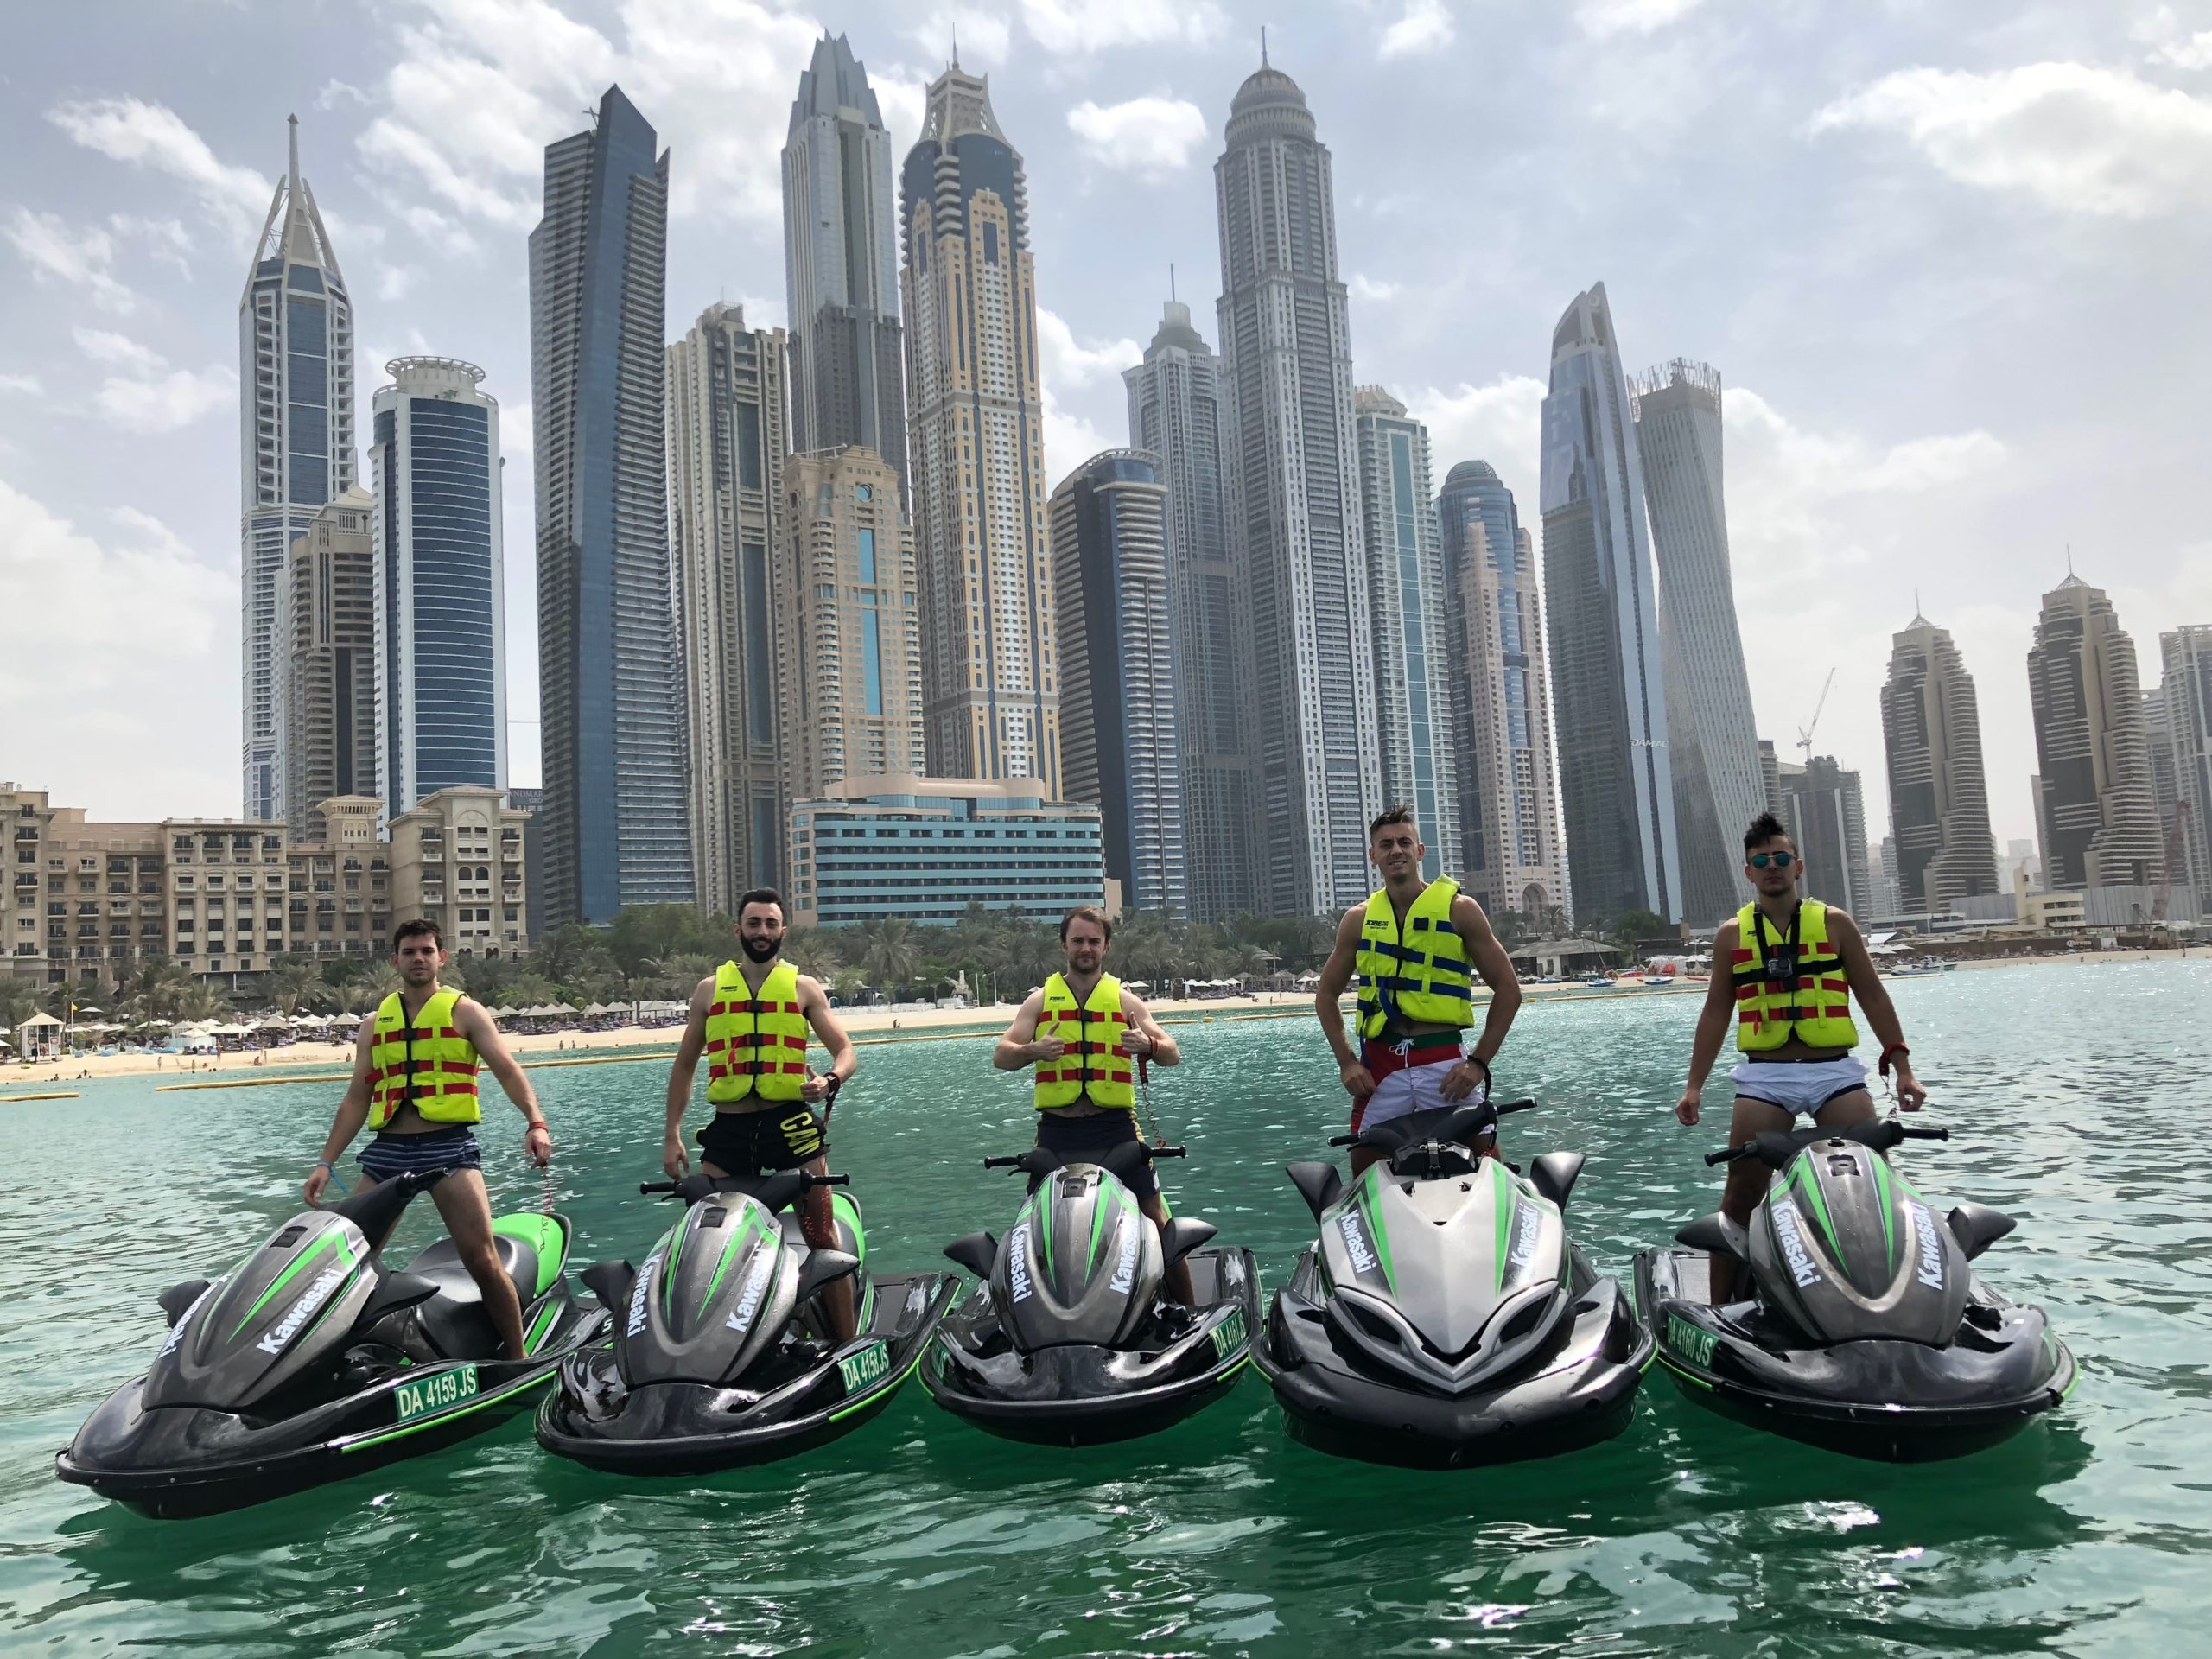 What to do and see in Dubai in 24 hours?